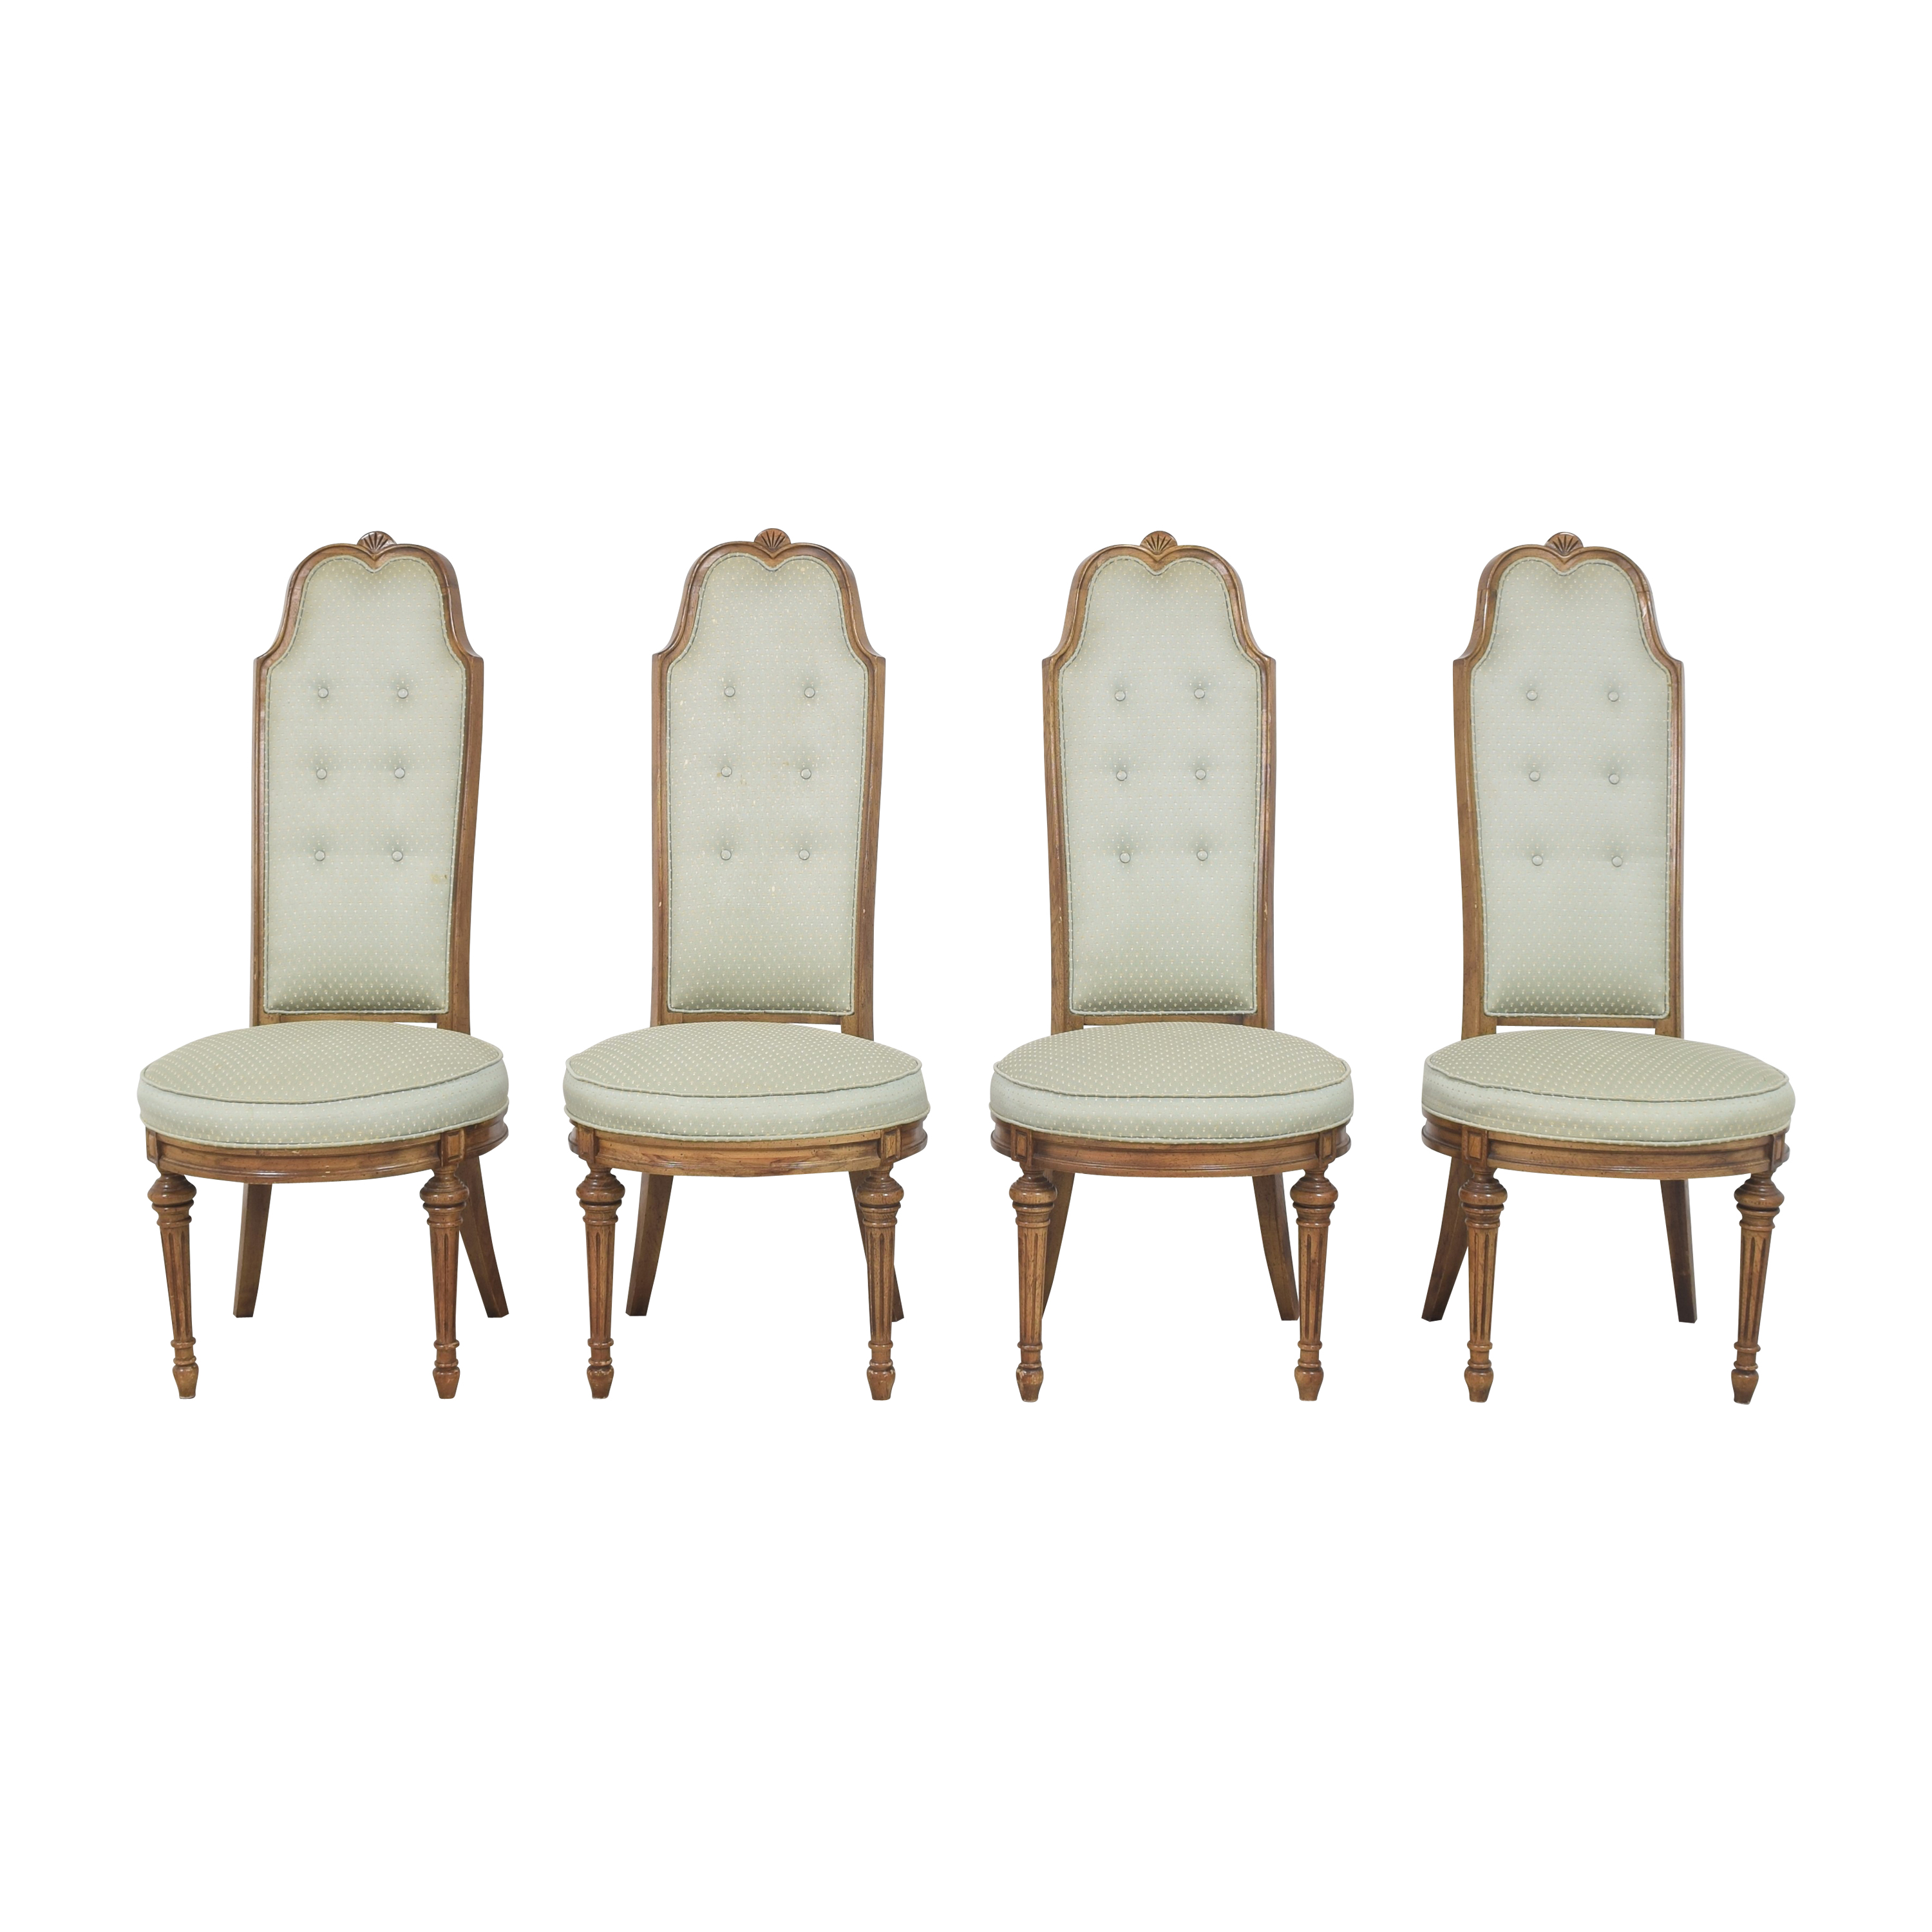 High Back Tufted Dining Chairs  green and gold